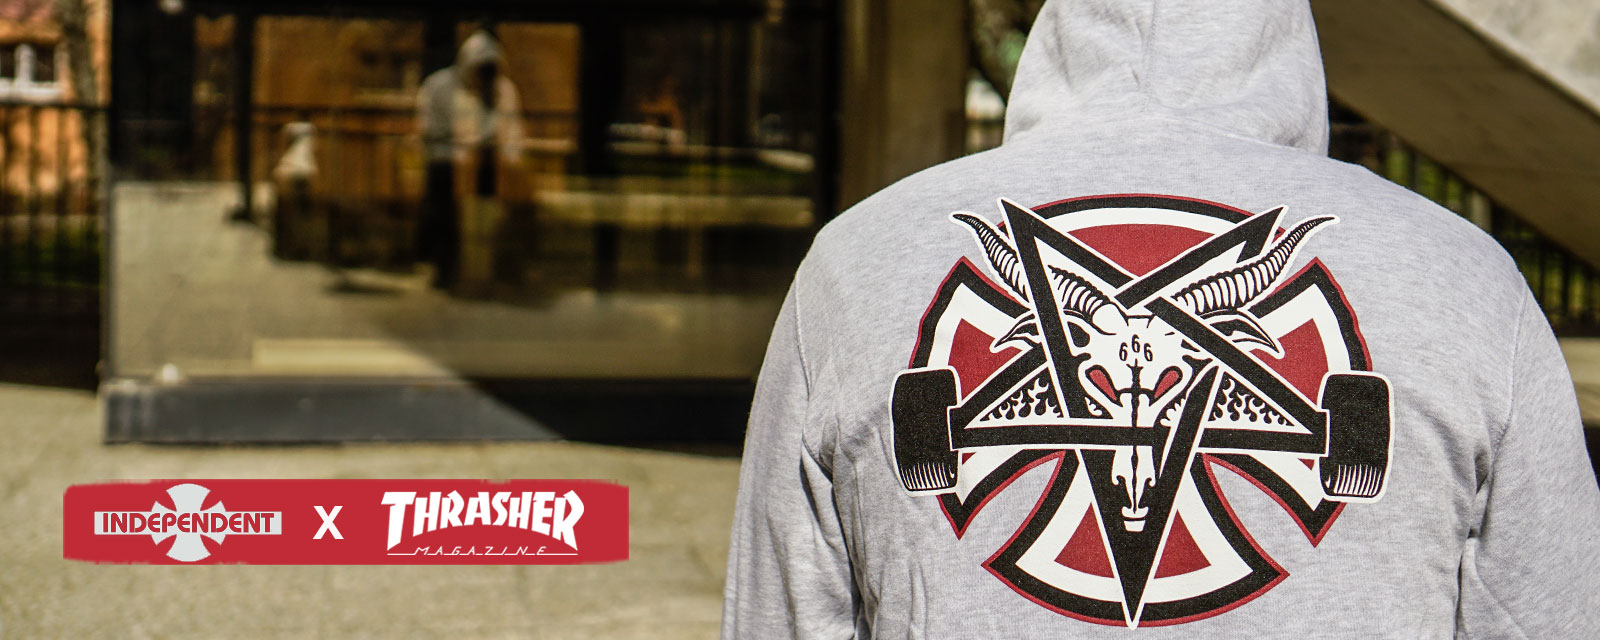 indy x thrasher